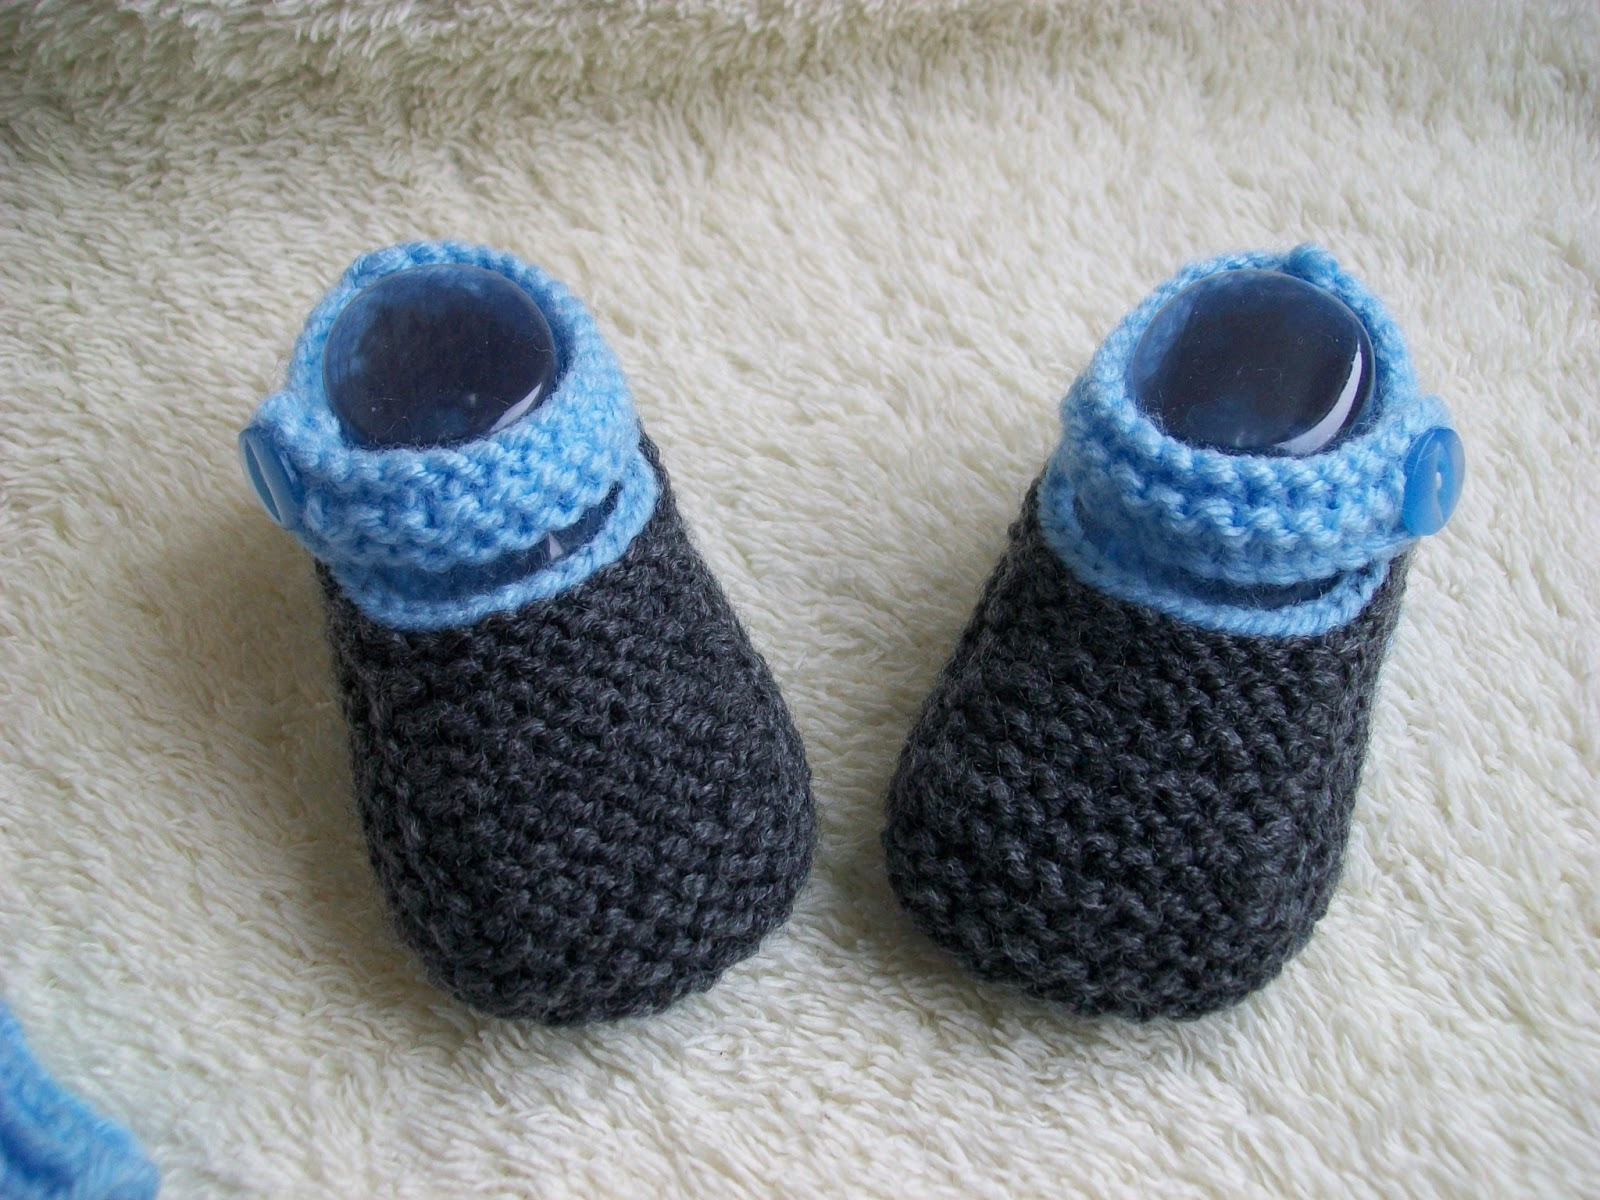 Knit Booties Pattern Free 30 Free Patterns For Knitted Ba Booties Guide Patterns